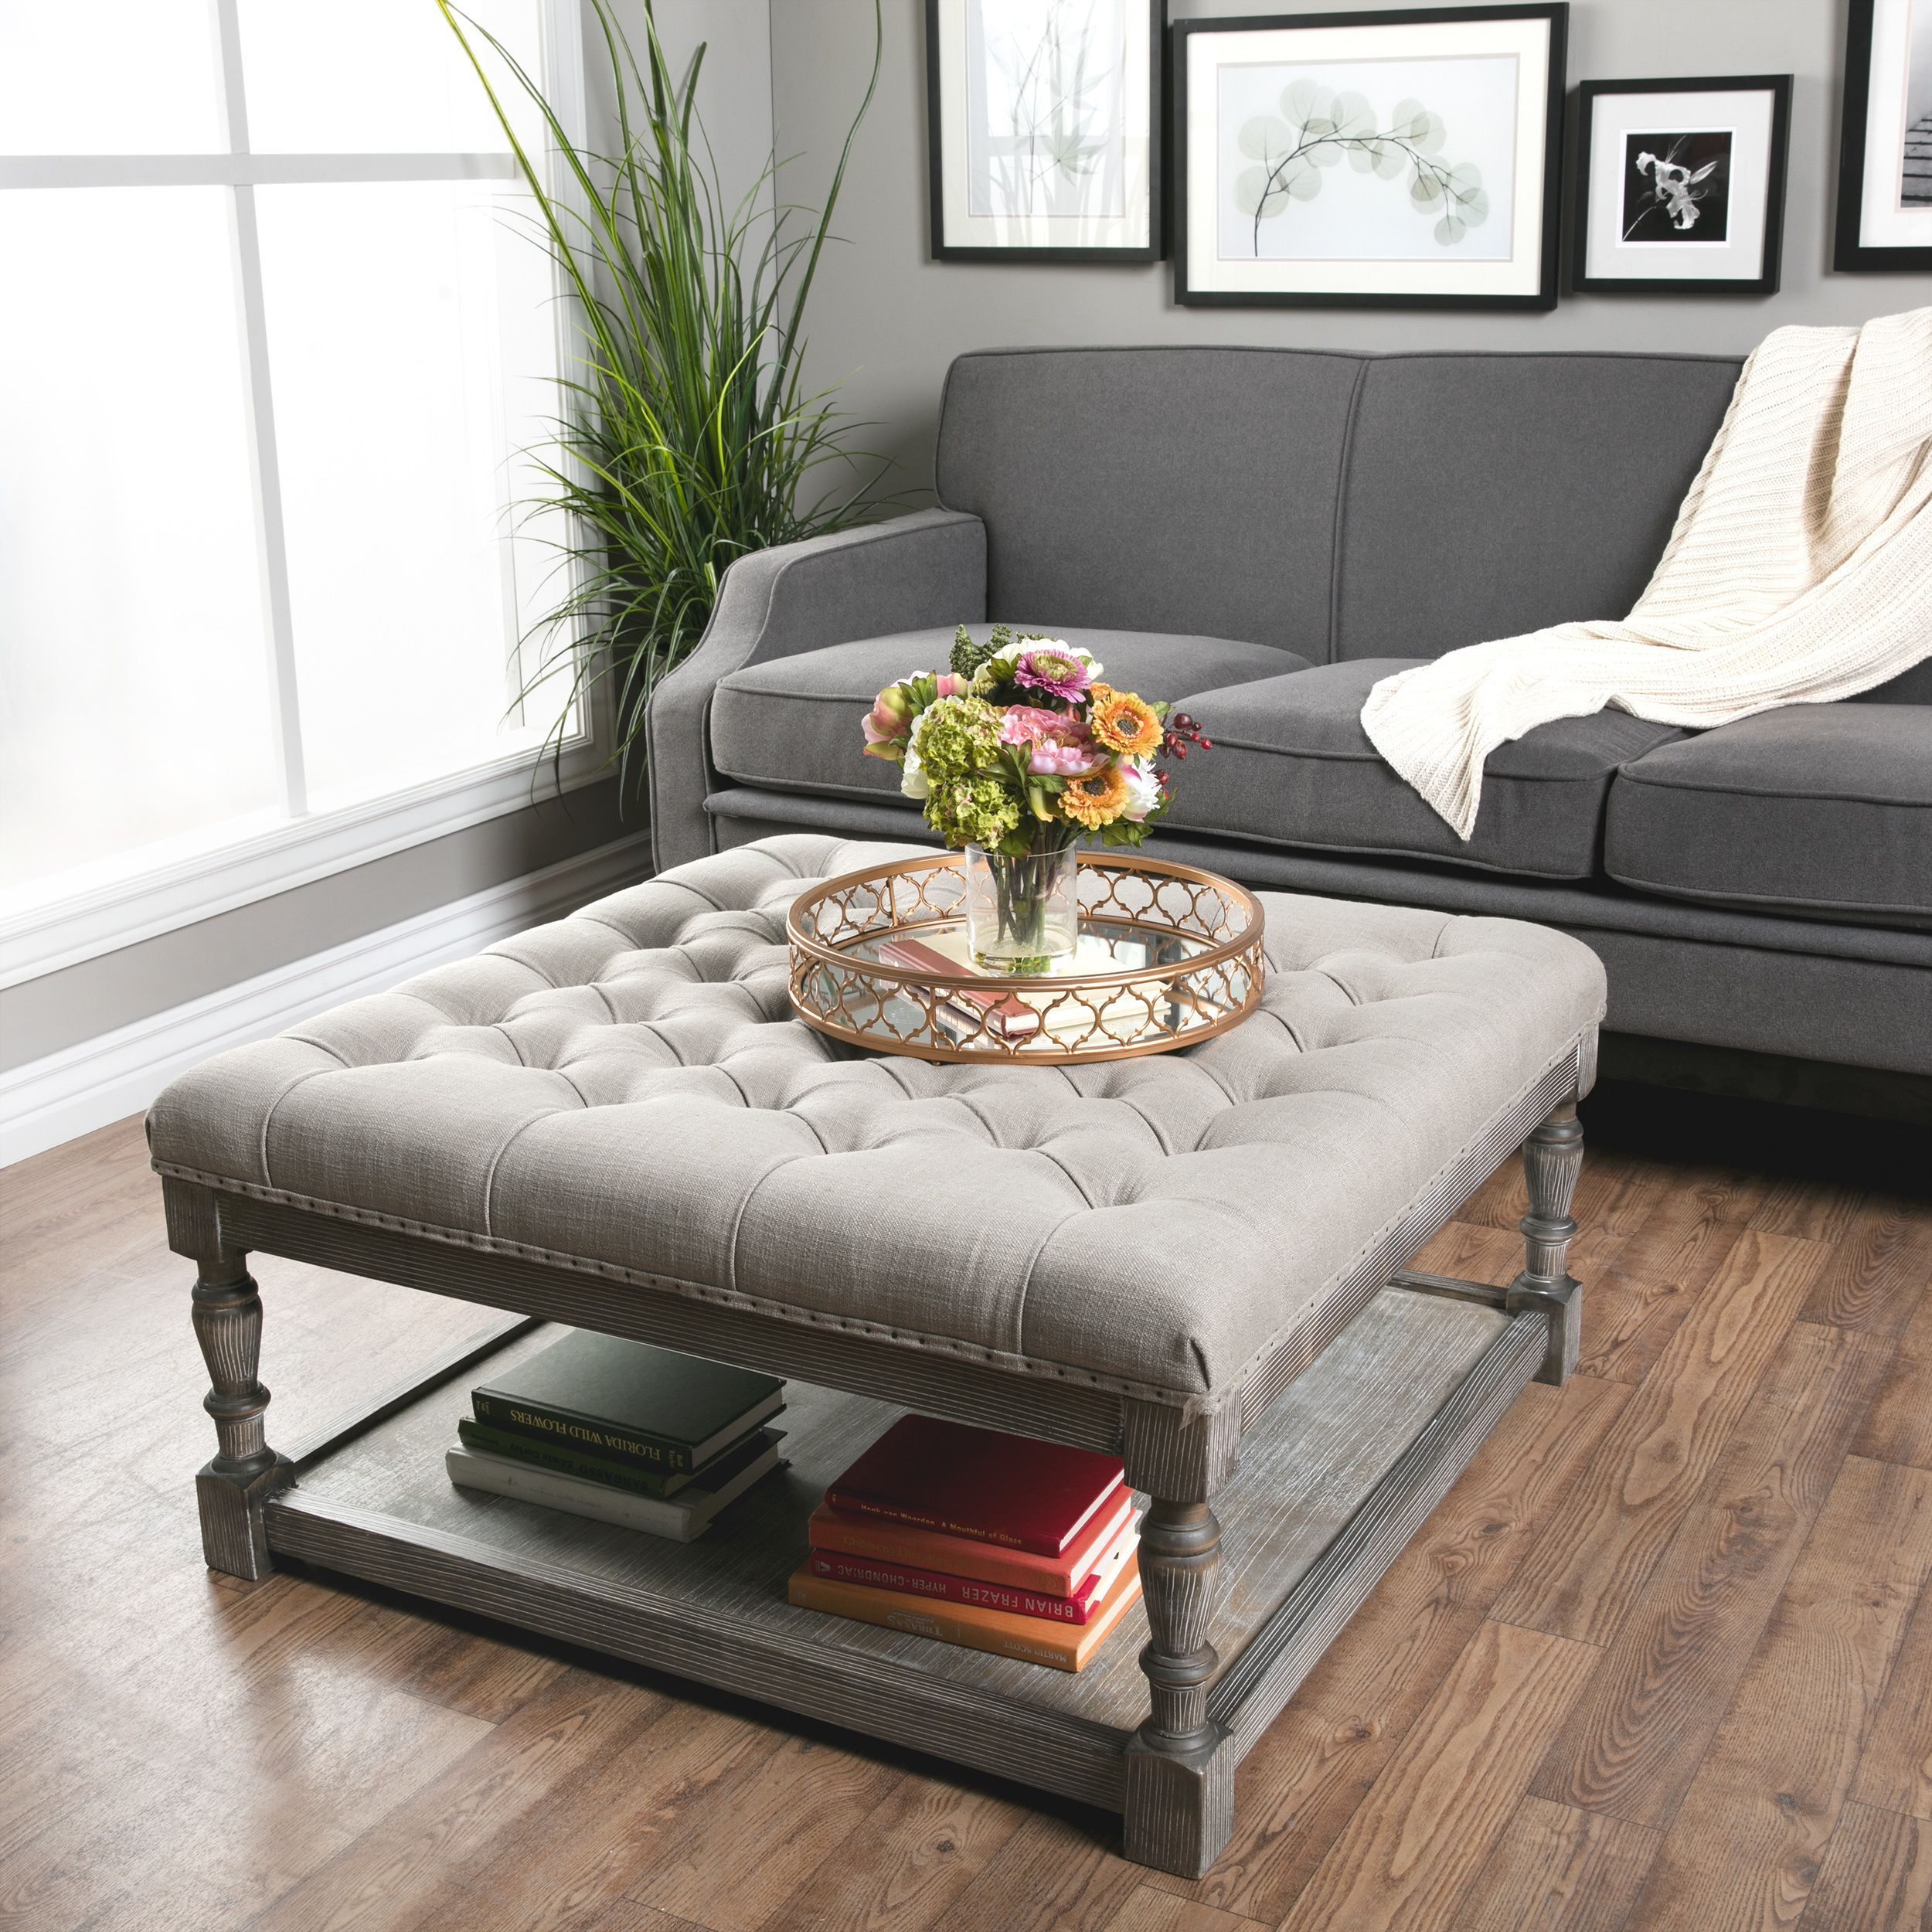 This Beautiful Creston Square Ottoman Features Comfortable Durable Fire Ant Foam Cushioning Solid Wood Framing In A Reclaimed Finish And Versatile